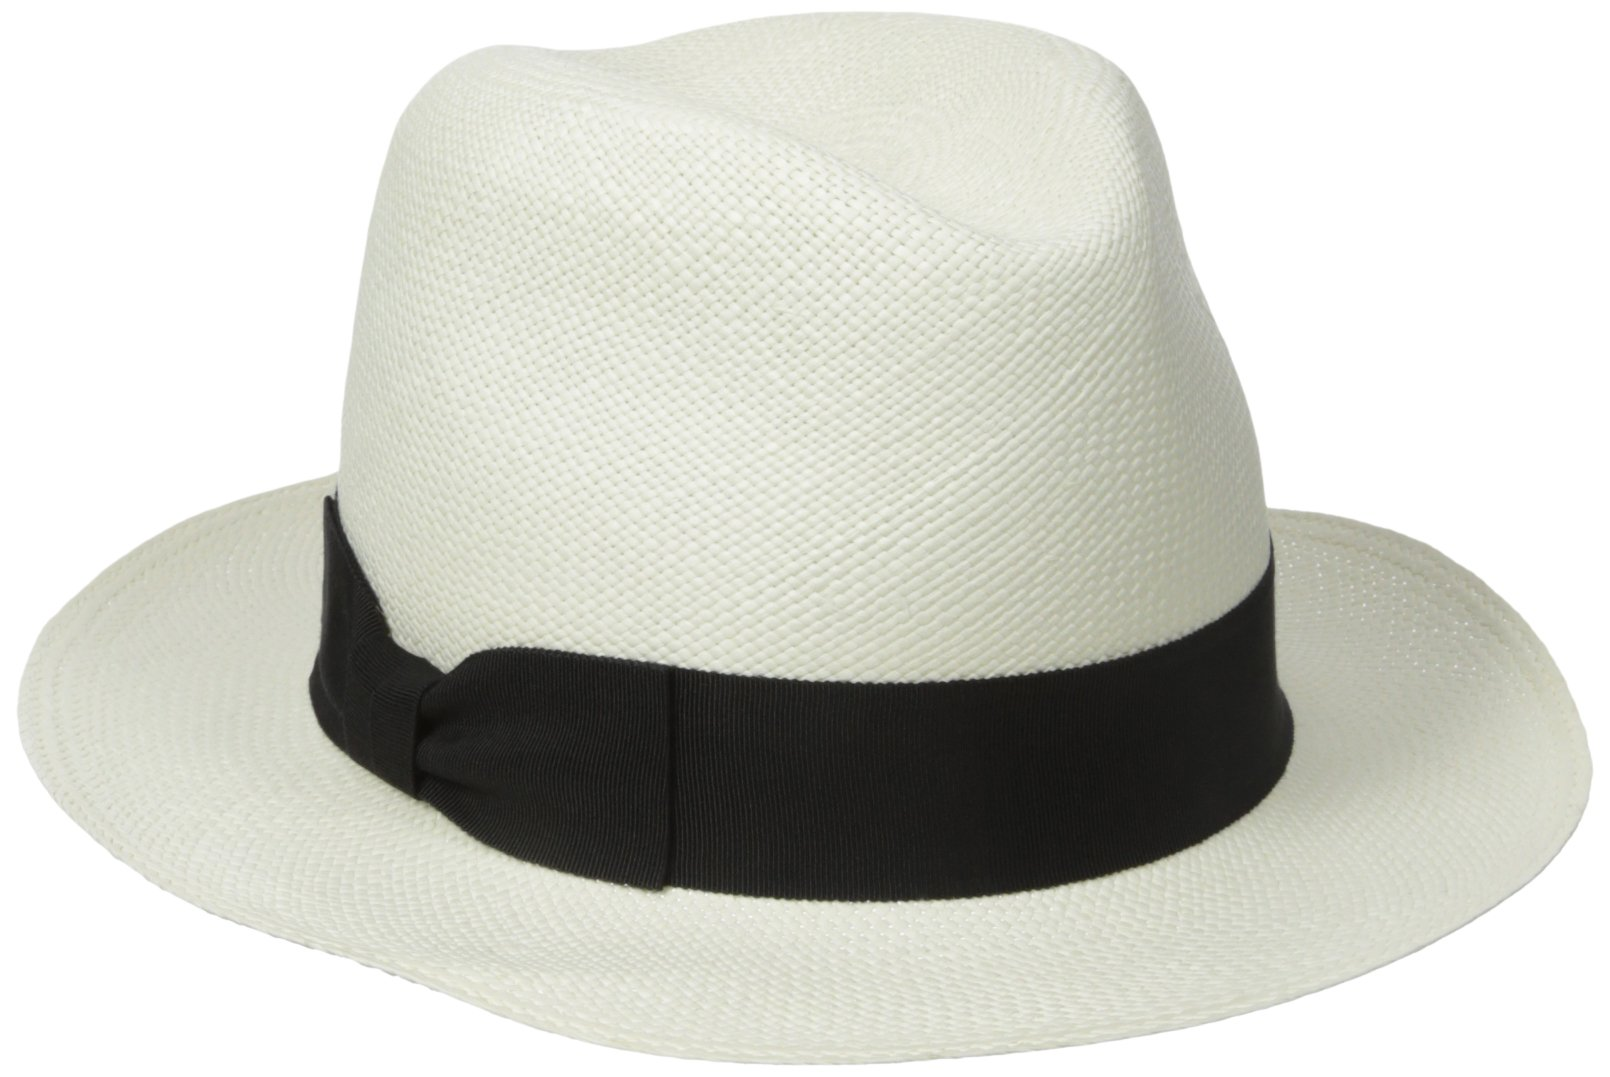 Hat Attack Women's The Original Panama Hat With Classic Bow Ribbon Trim, Bleach/Black, One Size by Hat Attack